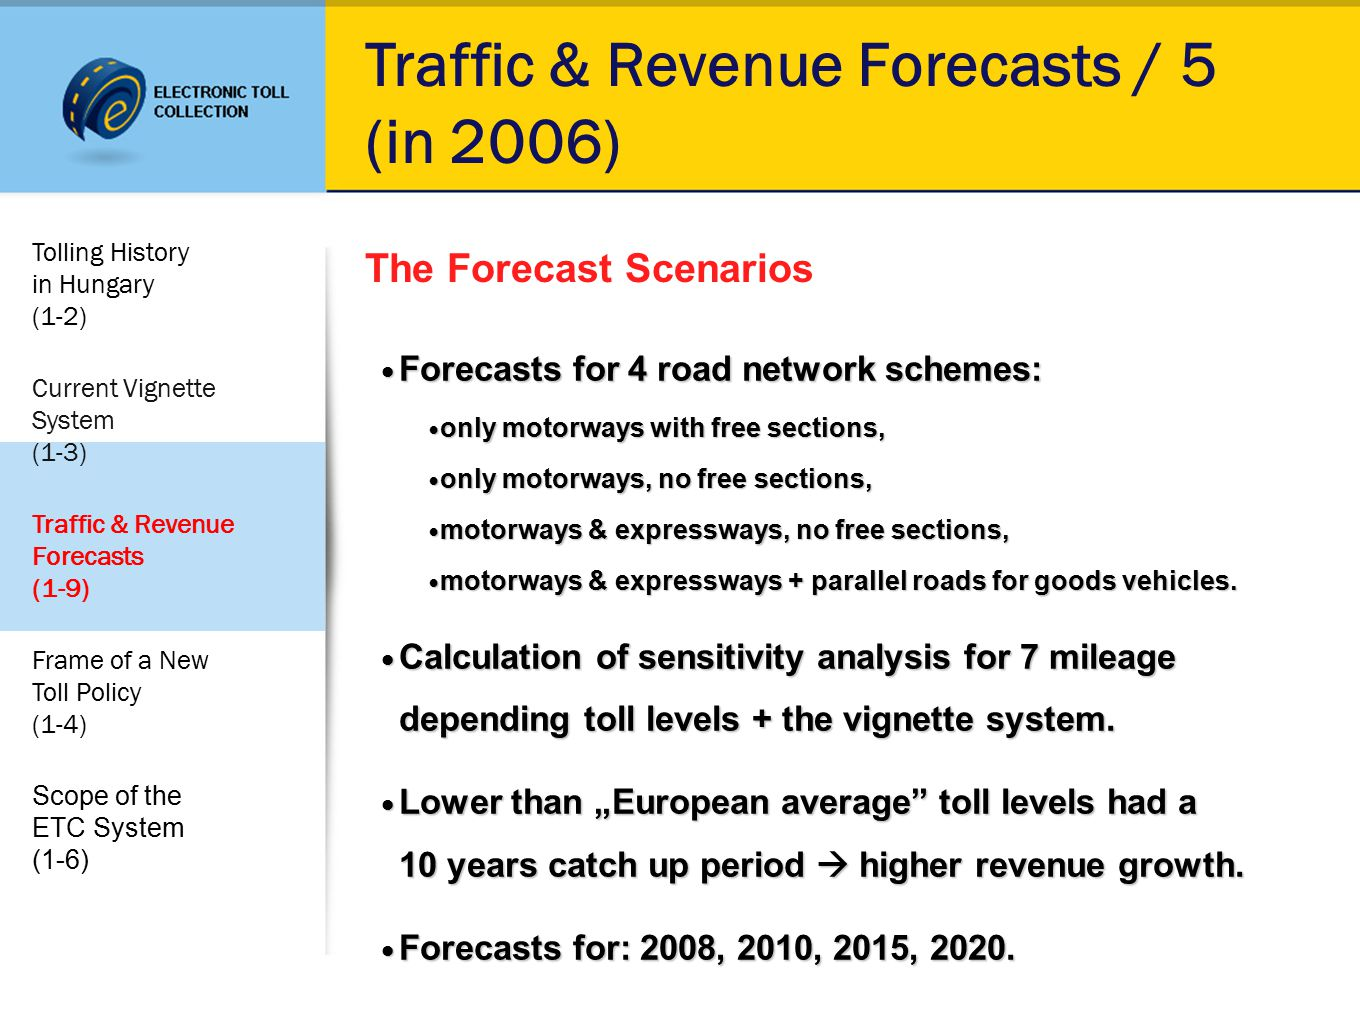 Traffic & Revenue Forecasts / 5 (in 2006) Forecasts for 4 road network schemes: Forecasts for 4 road network schemes: only motorways with free sections, only motorways with free sections, only motorways, no free sections, only motorways, no free sections, motorways & expressways, no free sections, motorways & expressways, no free sections, motorways &expressways + parallel roads for goods vehicles.